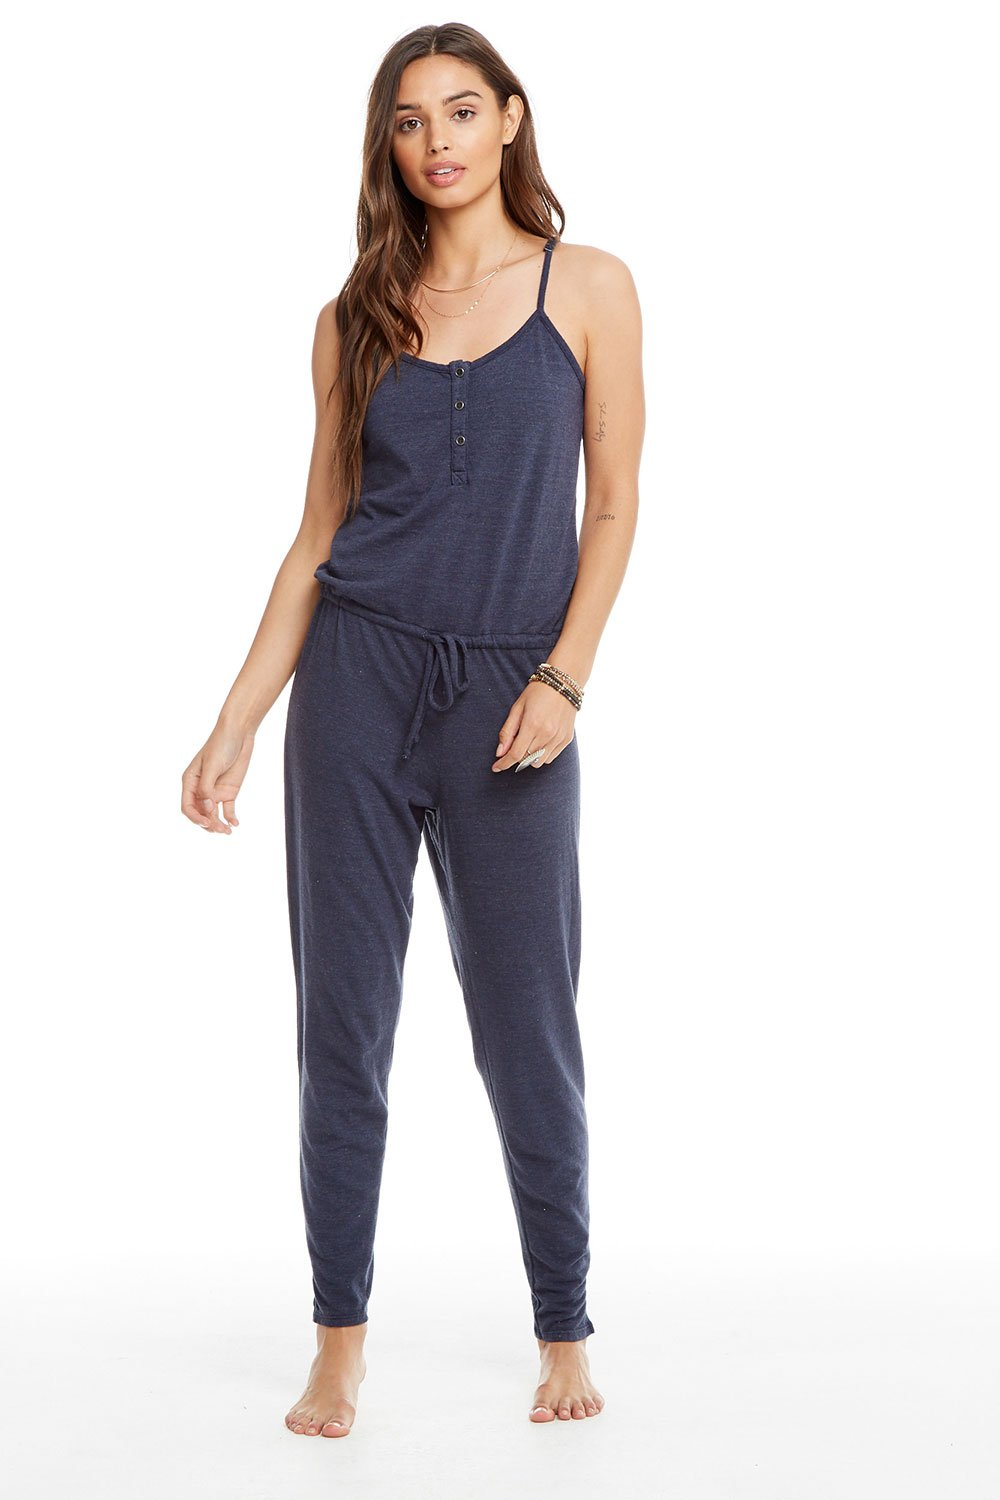 Chaser Triblend Scoop Back Drawstring Waist Henley Jumpsuit - Major (Dark Blue)